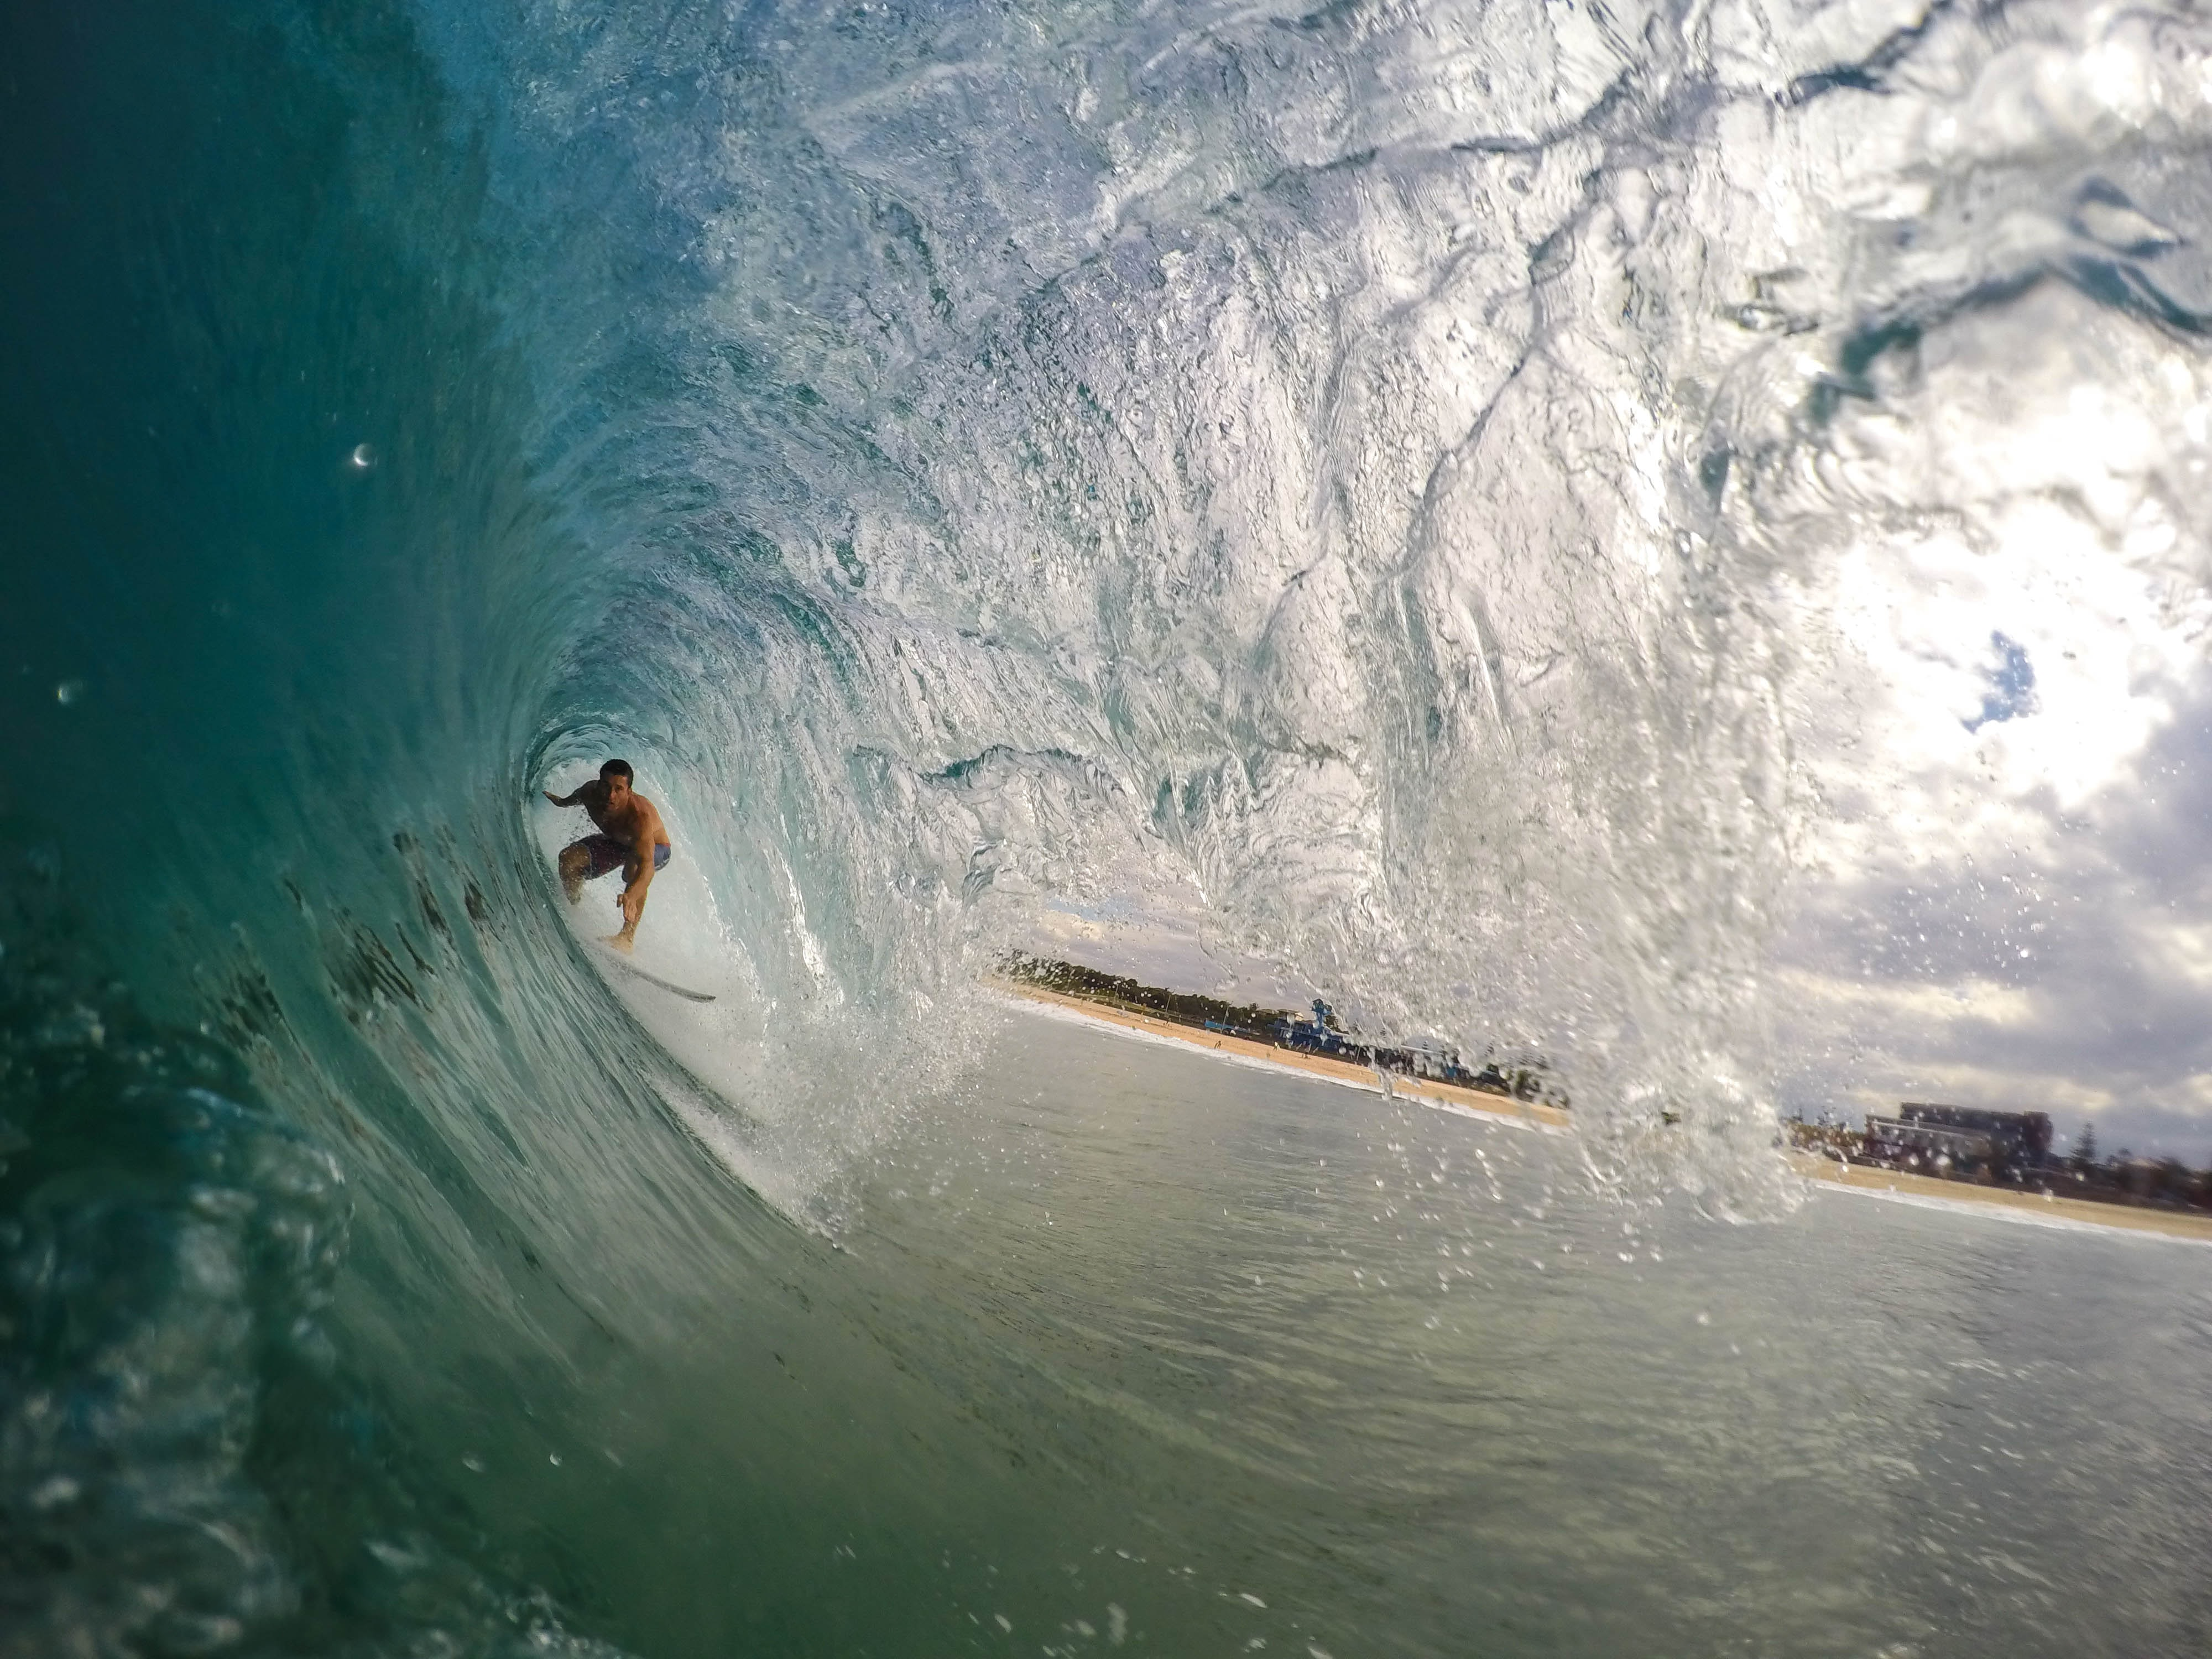 A surfer riding a large wave near a beach